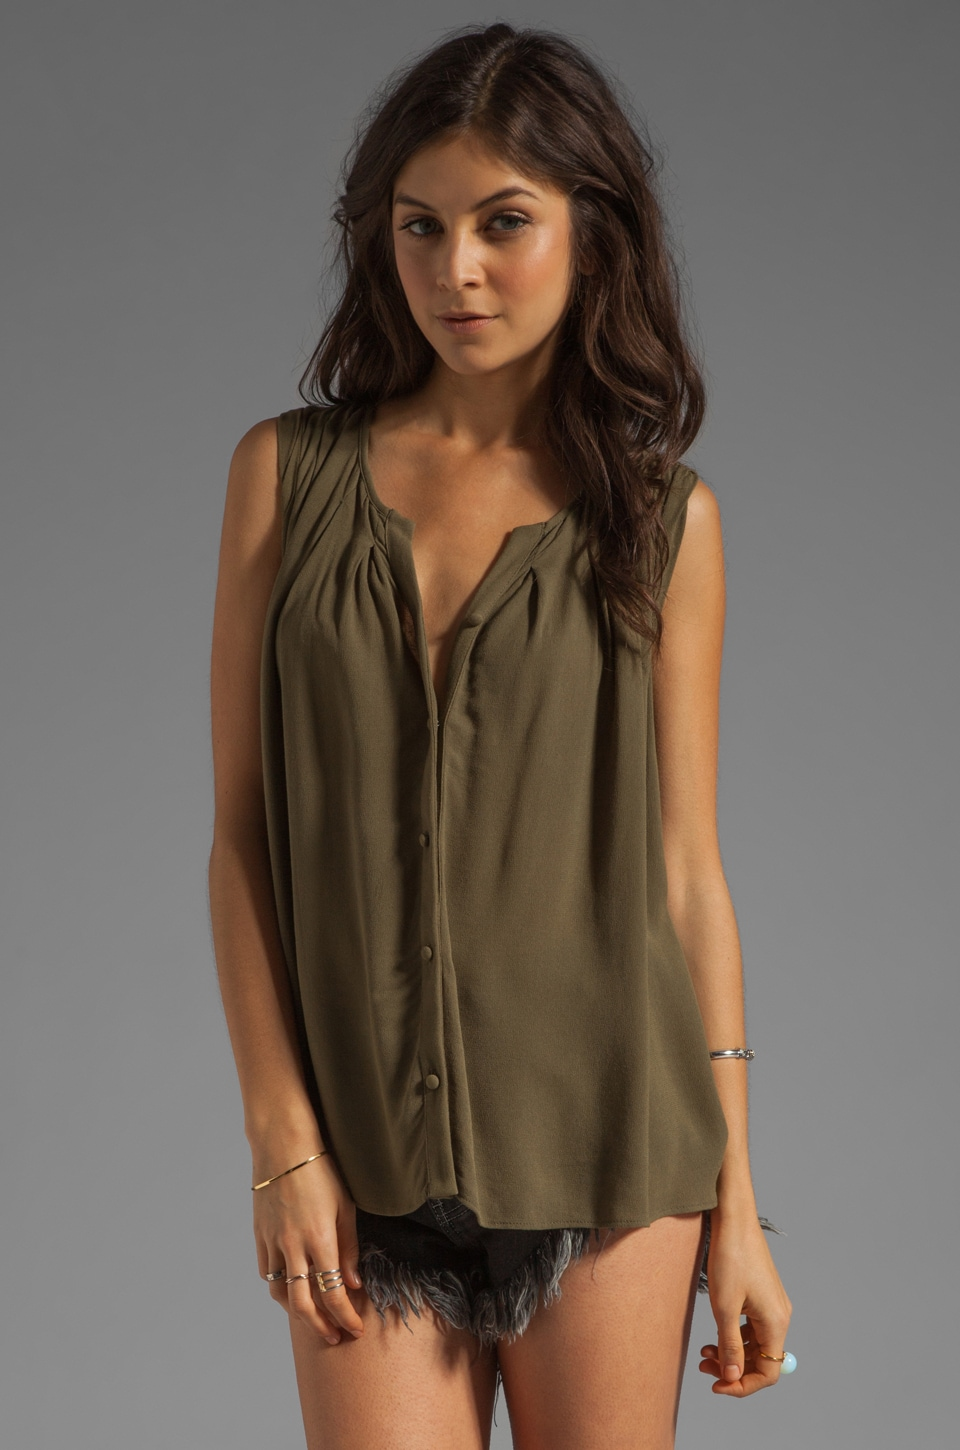 Ella Moss Stella Button Up Blouse in Olive